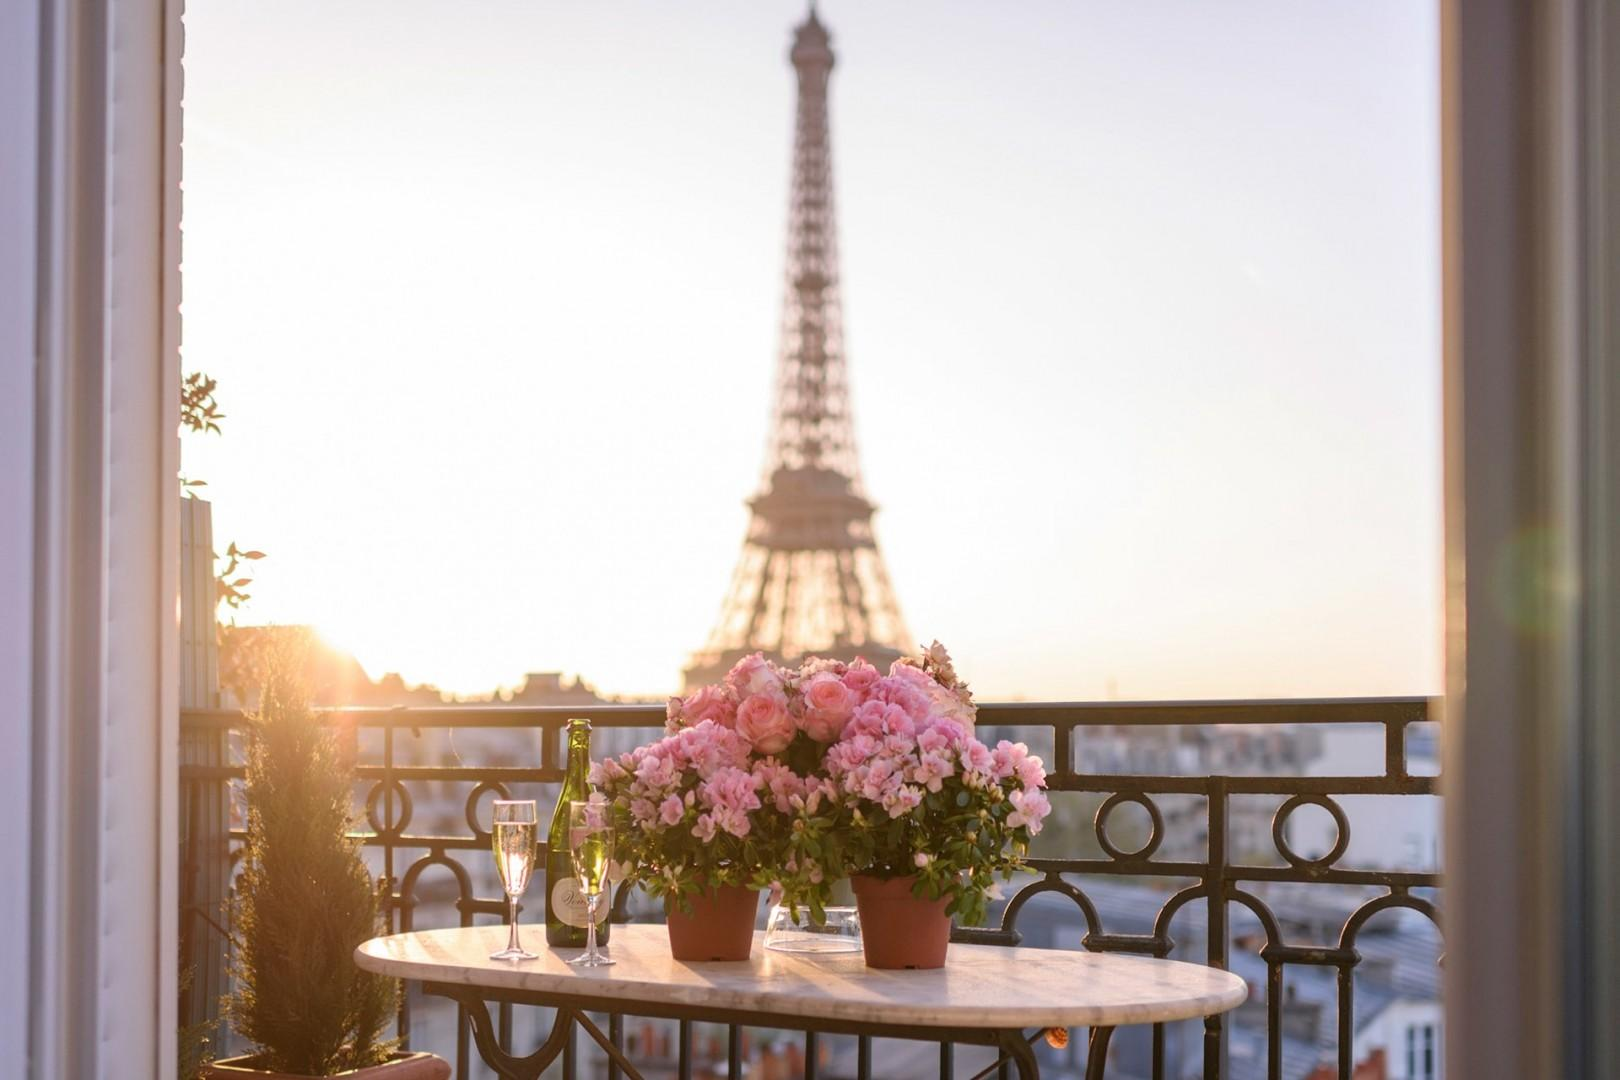 Enjoy these stunning Eiffel Tower views right from your balcony.